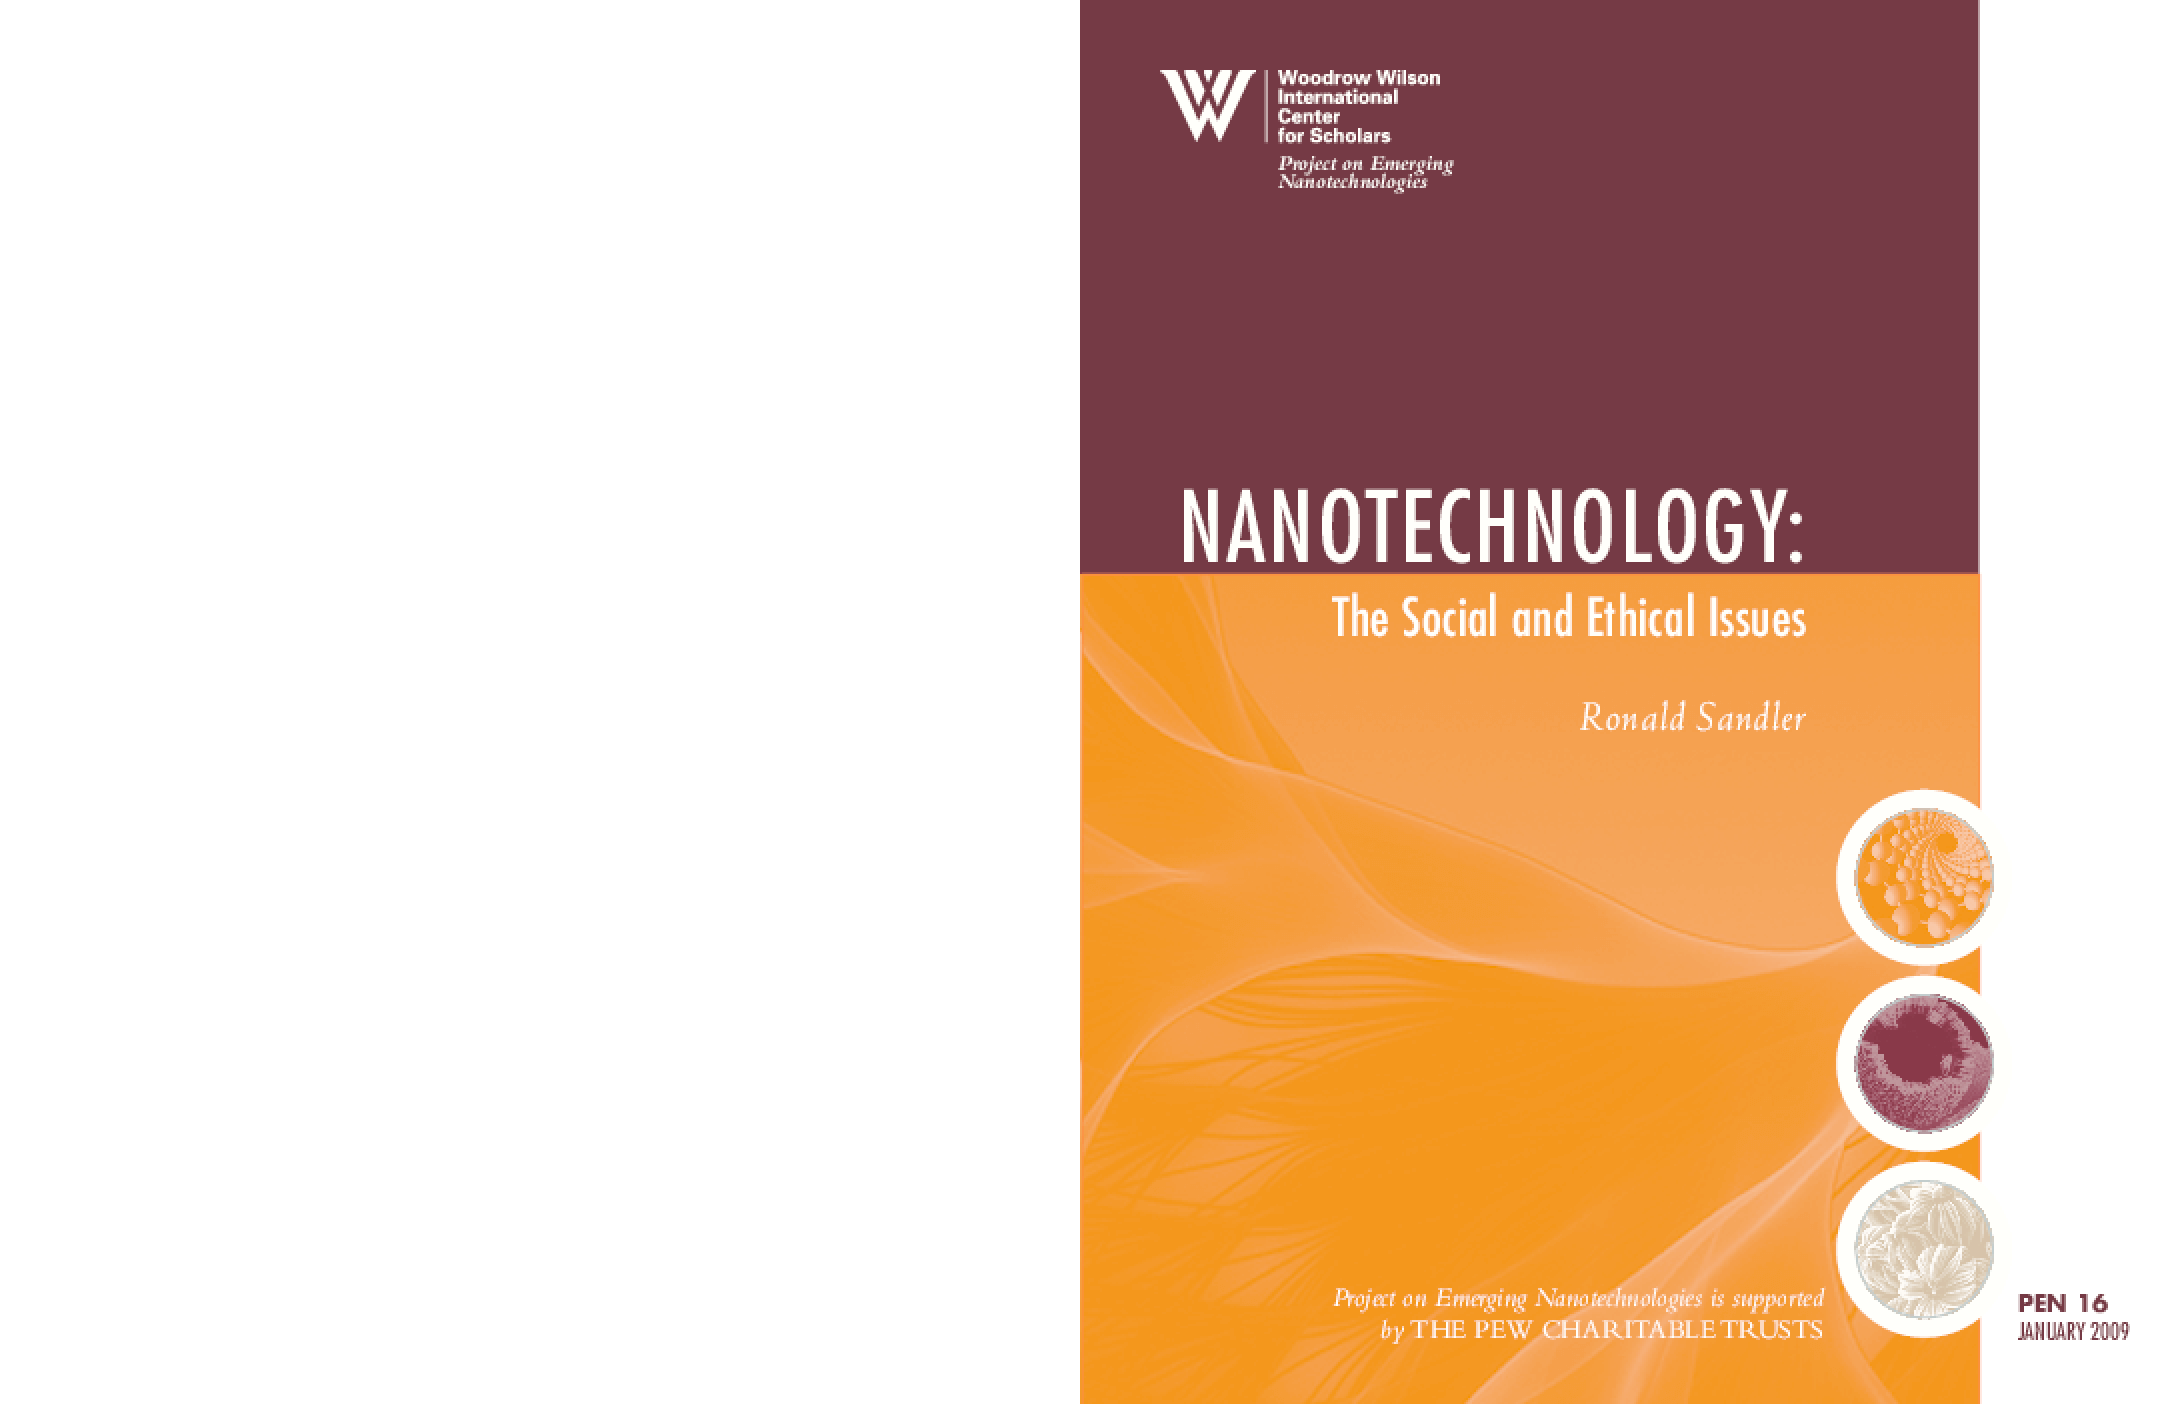 Nanotechnology: The Social and Ethical Issues